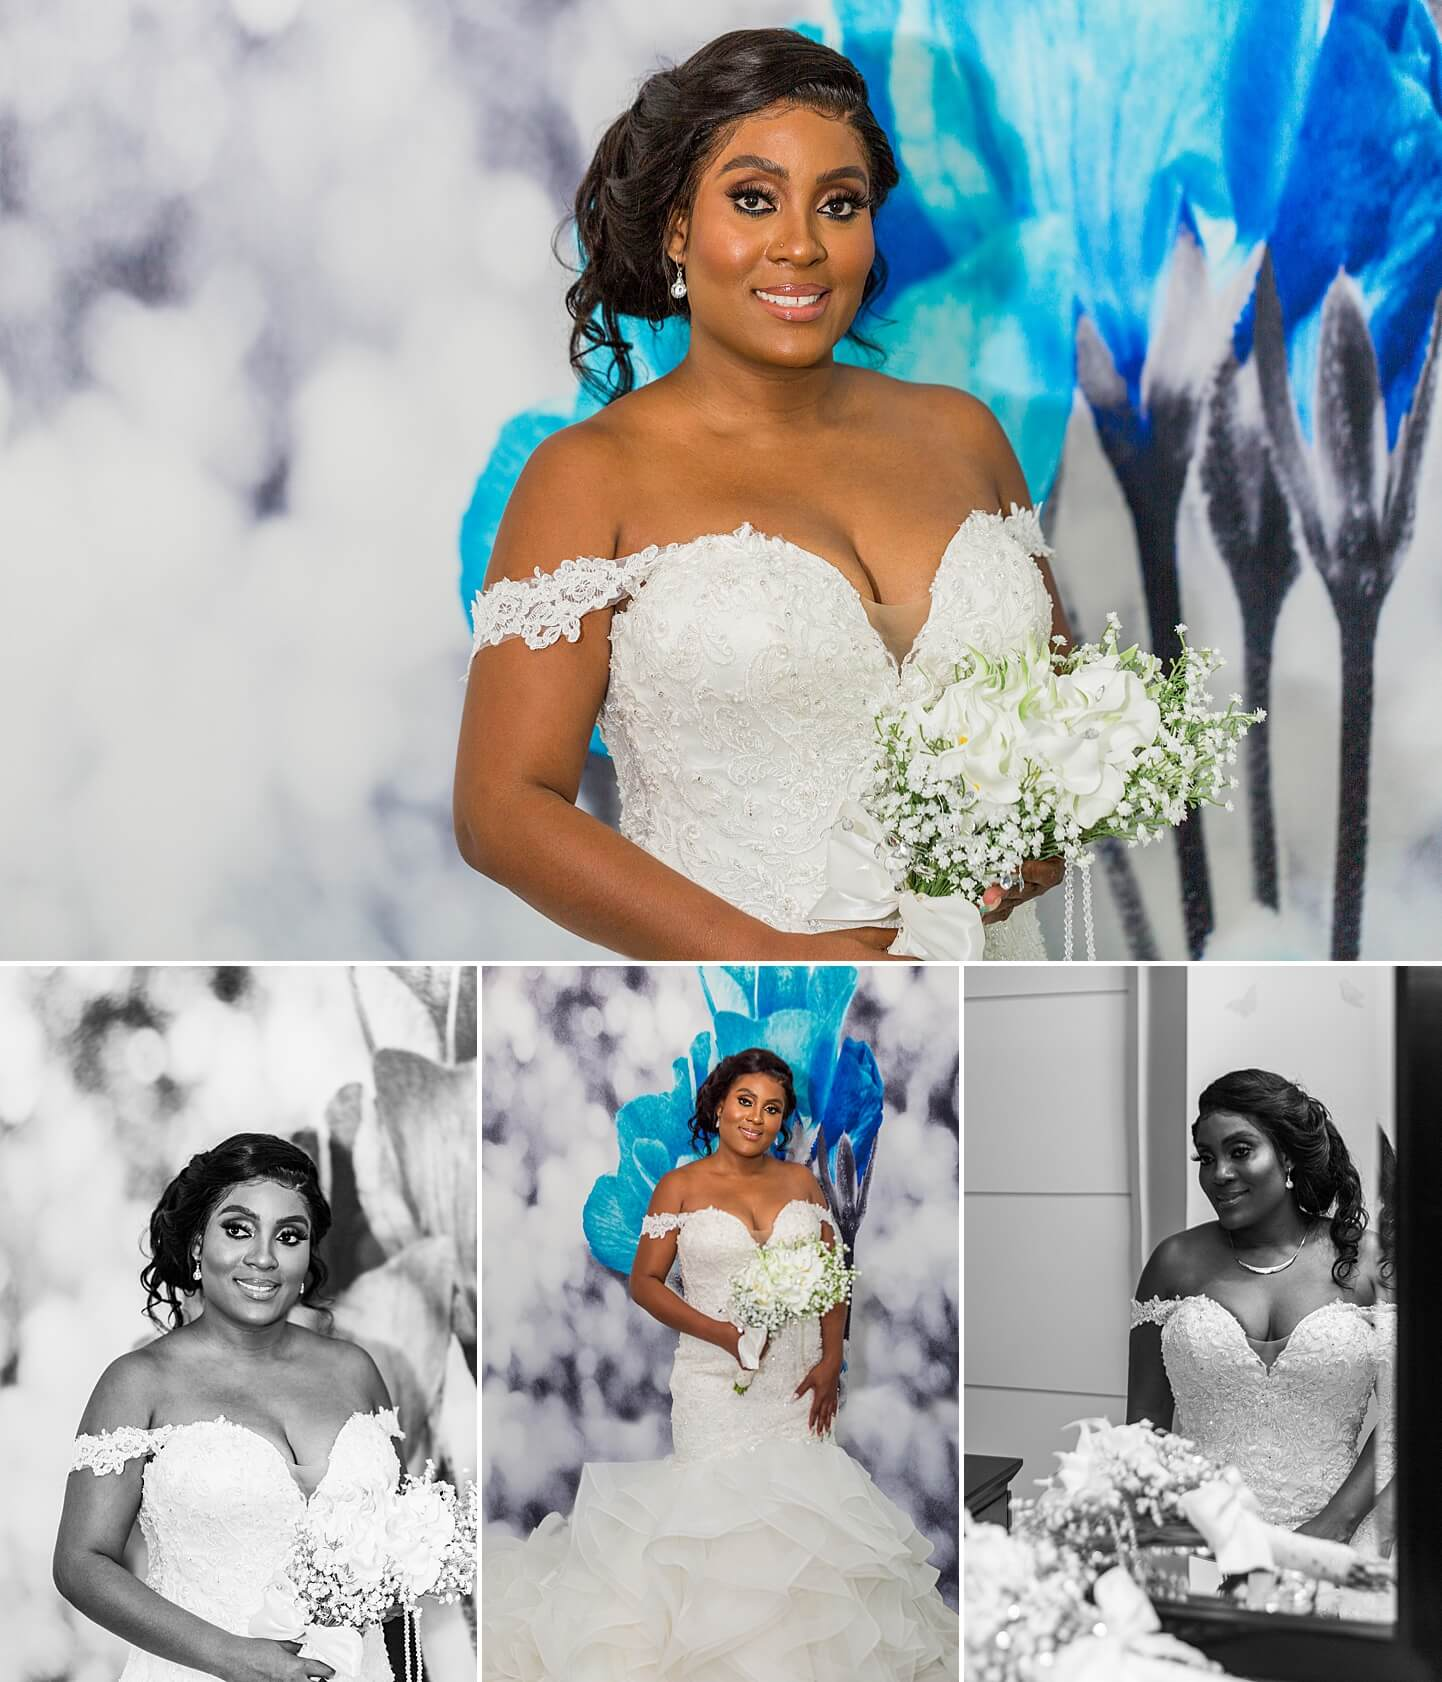 Photo collage of bride for Fort Lauderdale Wedding by White House Wedding Photography